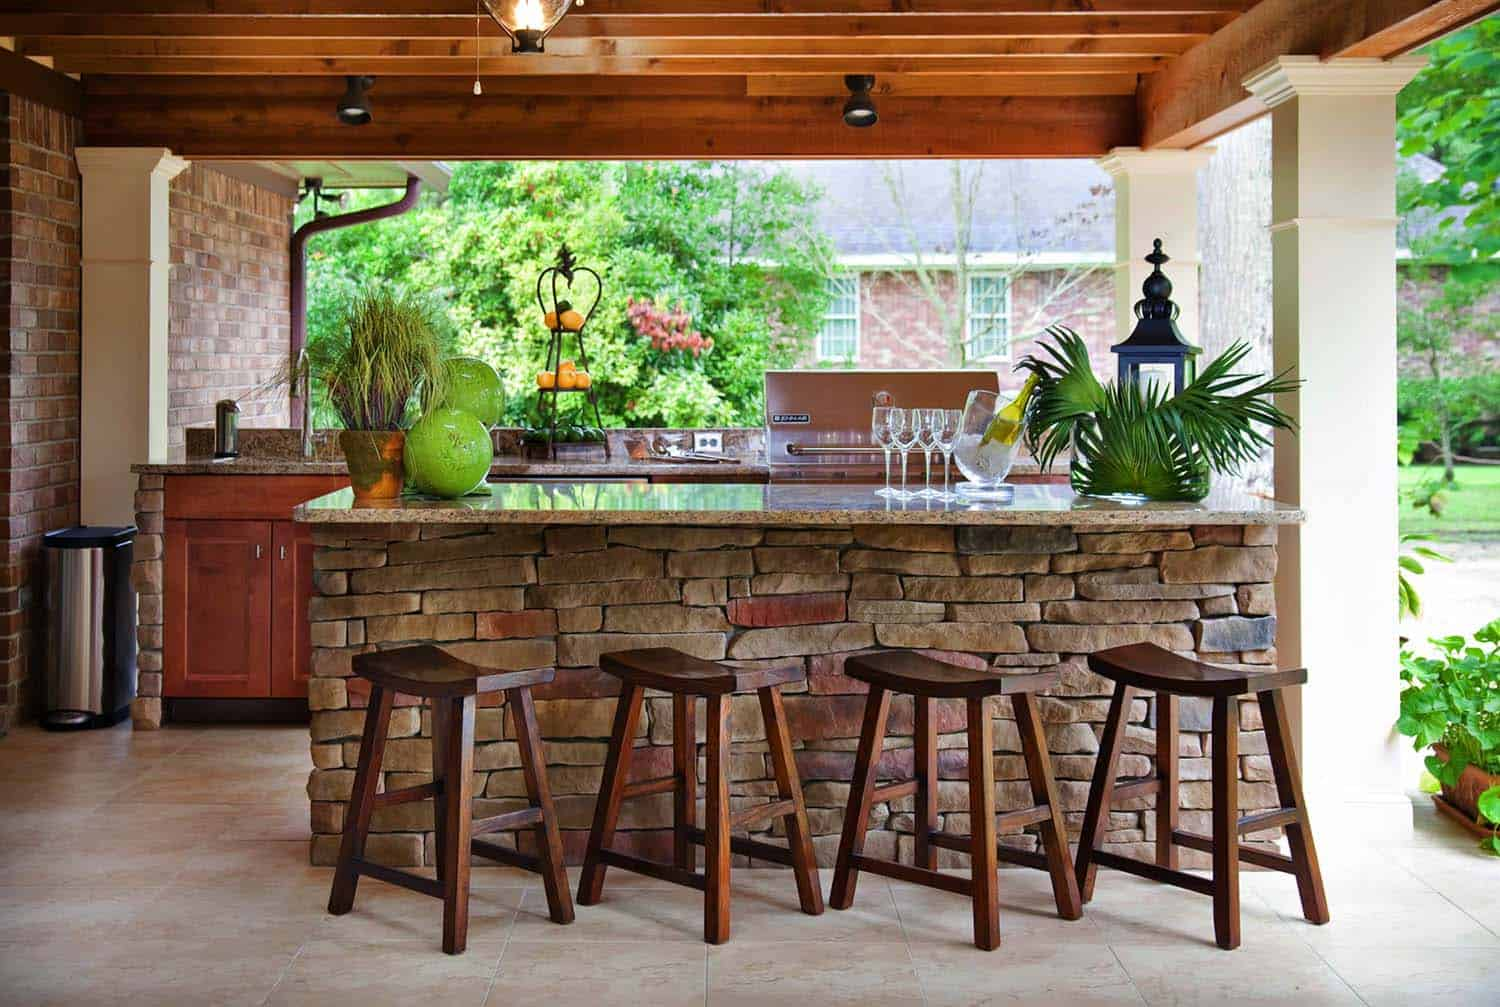 Outdoor Kitchens-Bars Entertaining-01-1 Kindesign.jpg